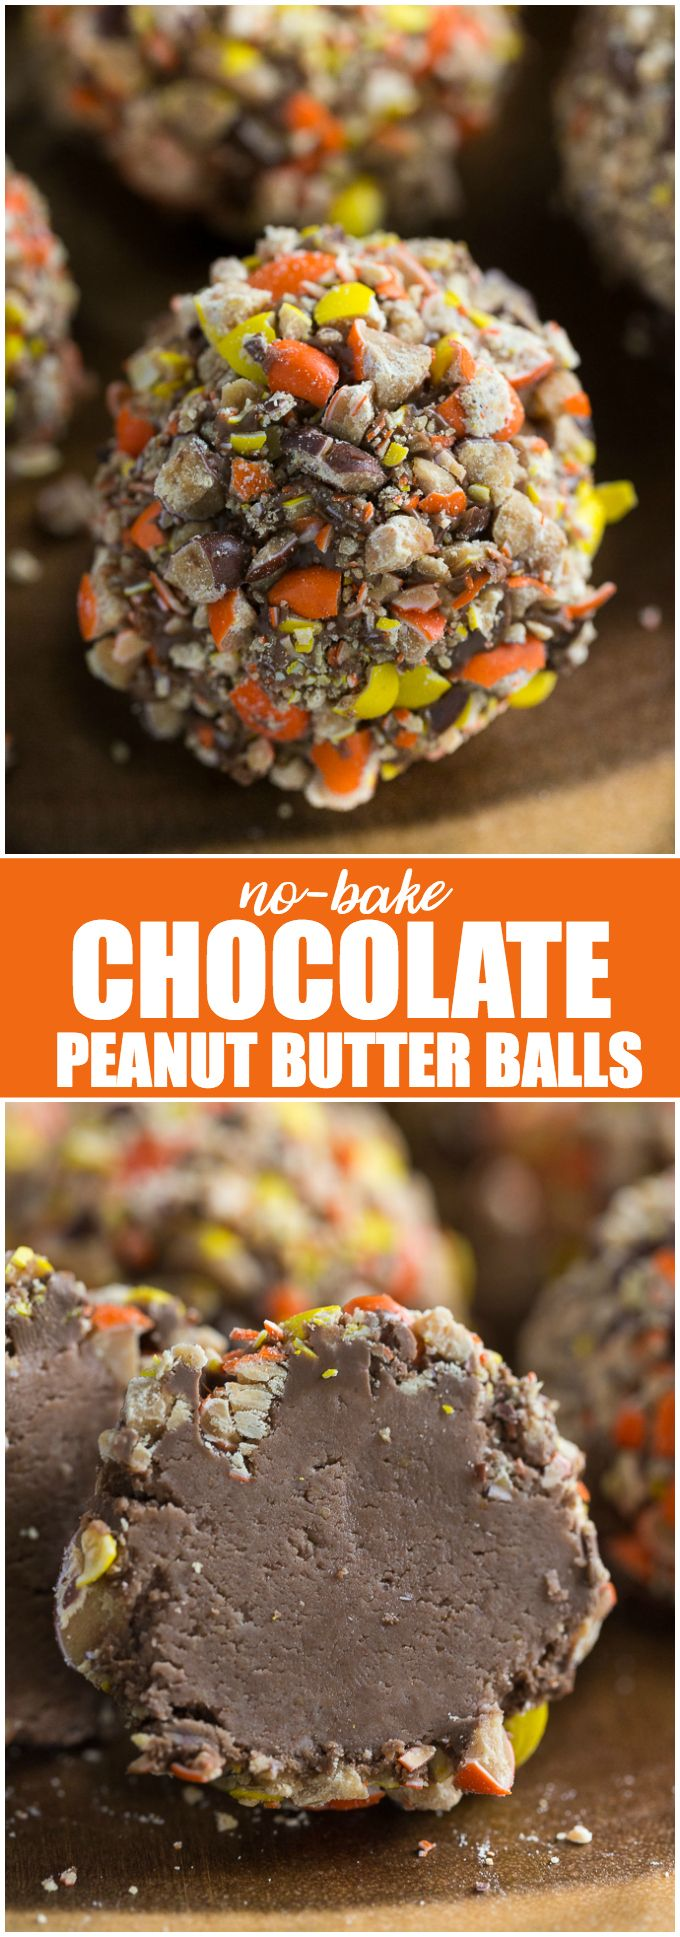 No-Bake Chocolate Peanut Butter Balls - Whip up these decadent treats for your friends and family to share over the holidays. They also make a nice DIY gift!